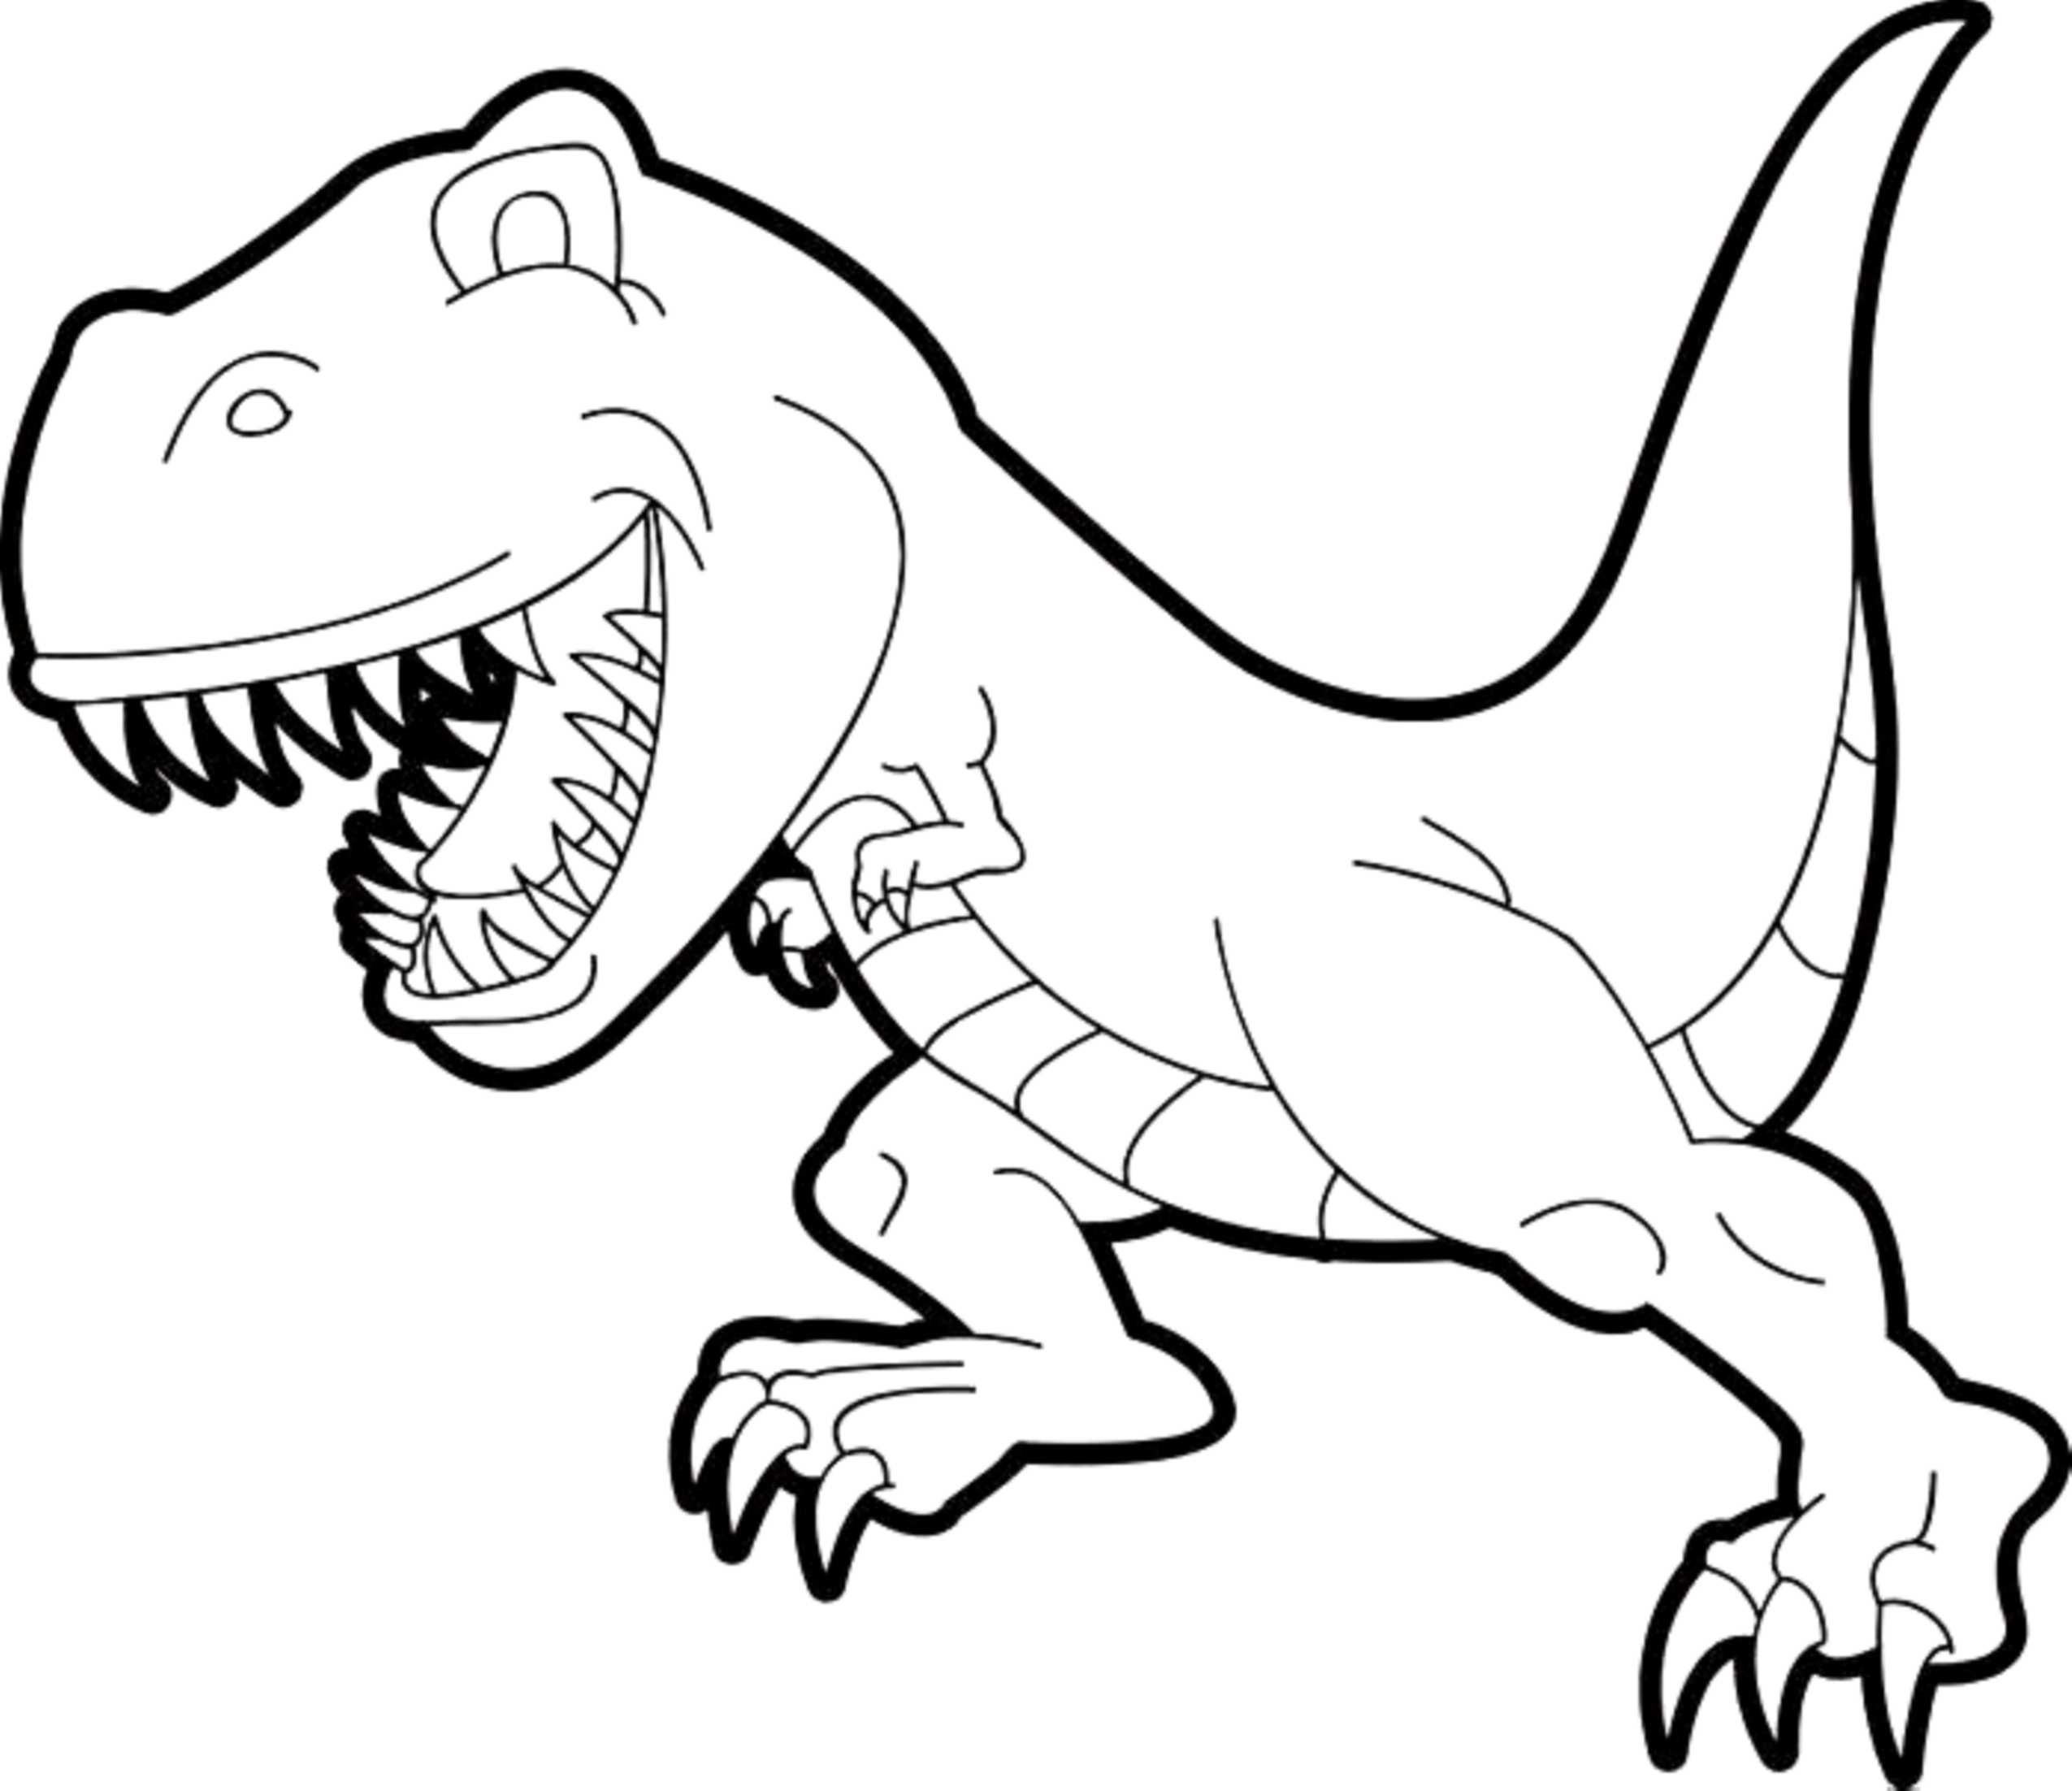 trex coloring page # 0